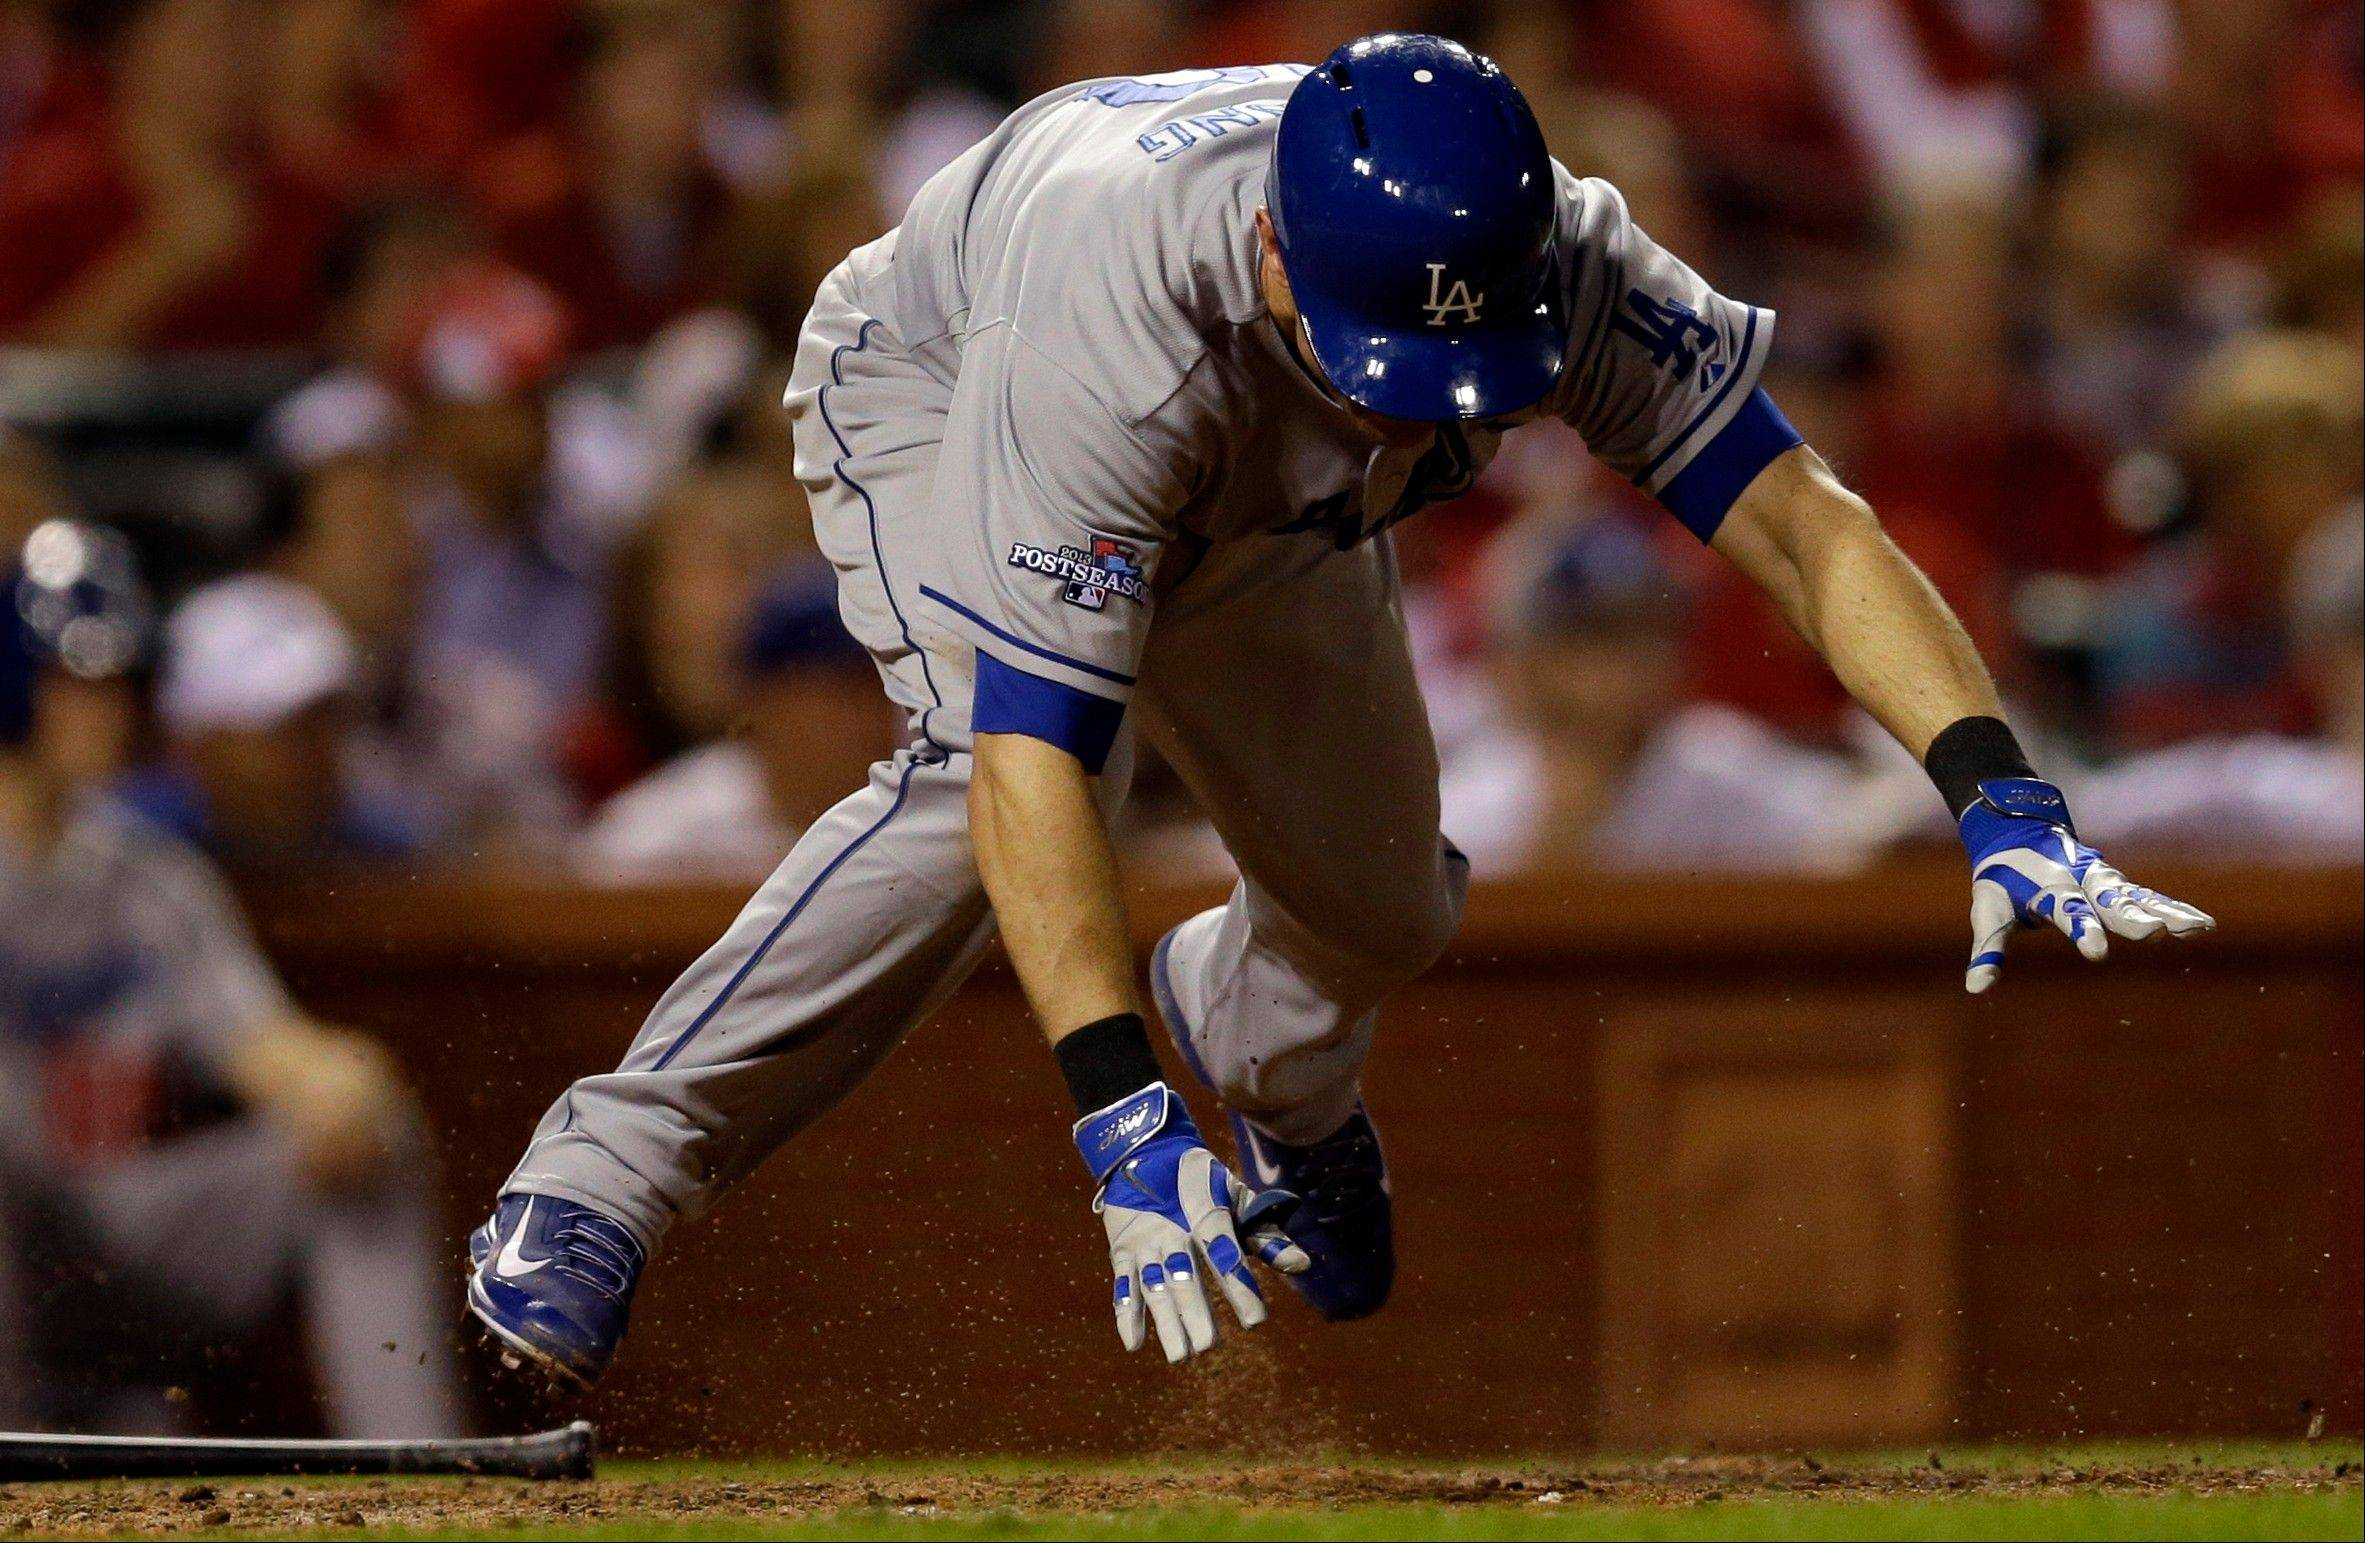 The Dodgers' Michael Young trips as he grounds into a double play during the 12th inning.